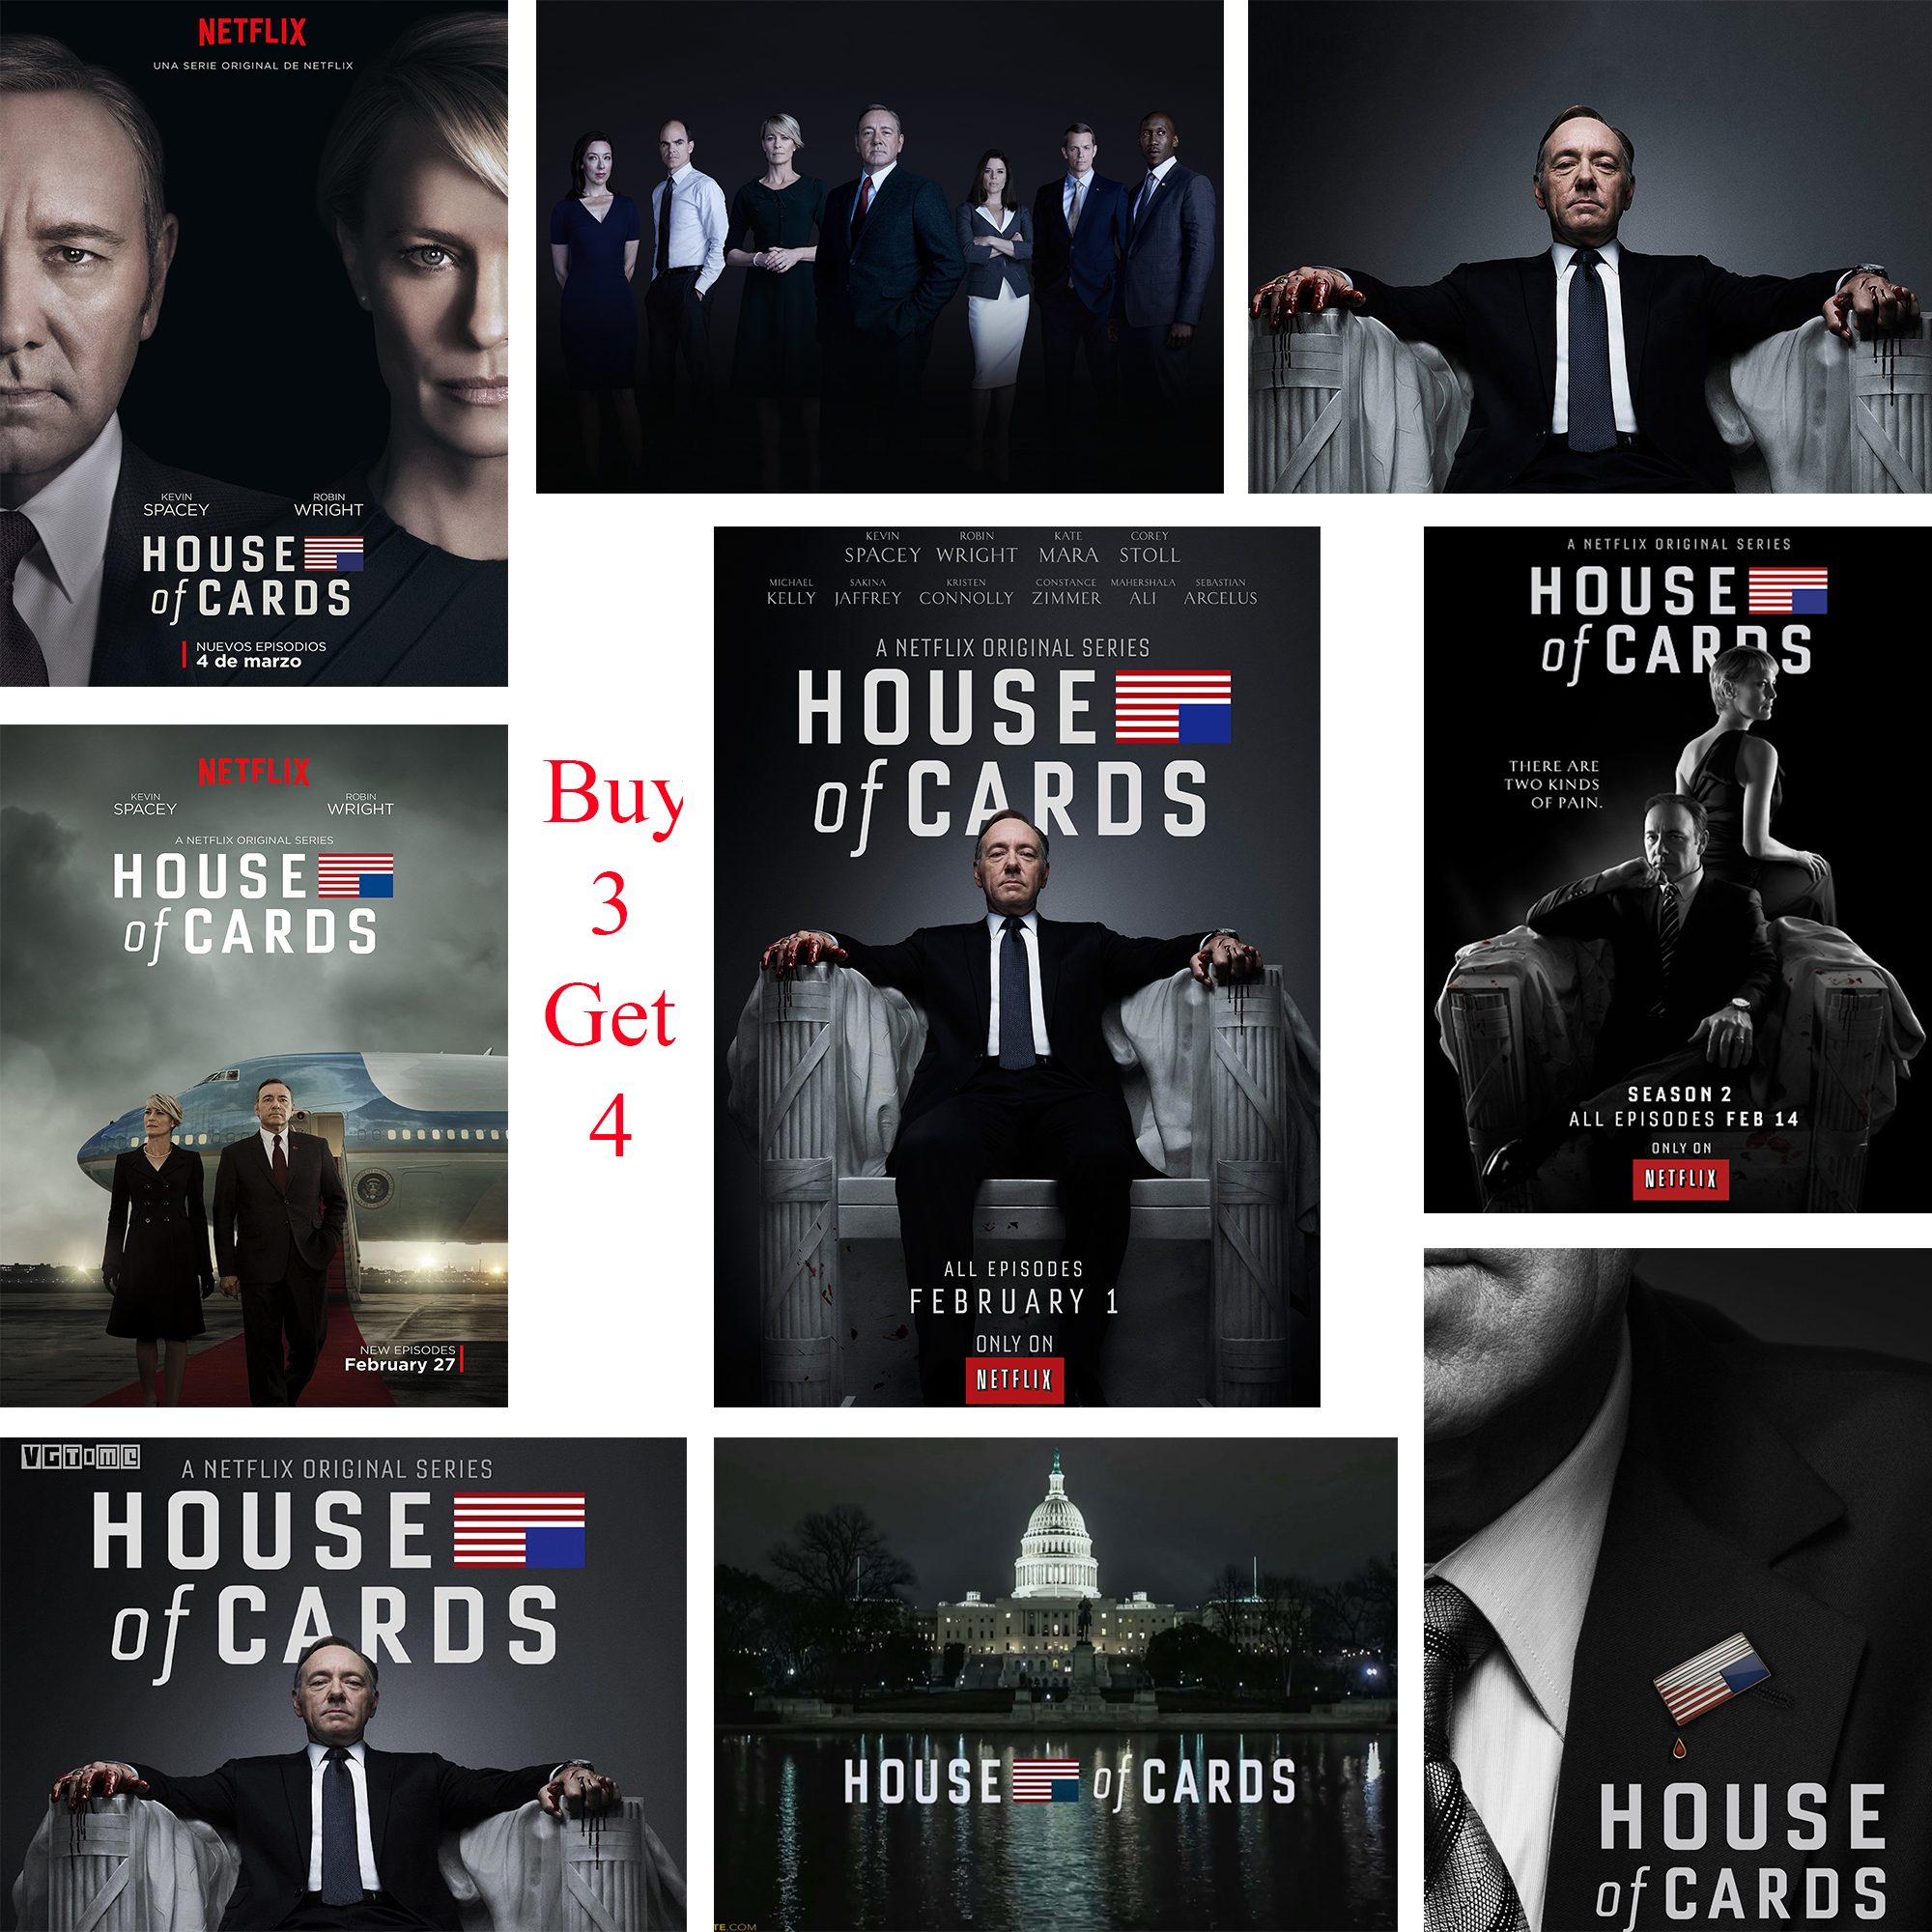 House of Cards Posters Wall Stickers White Coated Paper Prints Clear Image Home Decoration Livingroom Bedroom Bar Home Art Brand